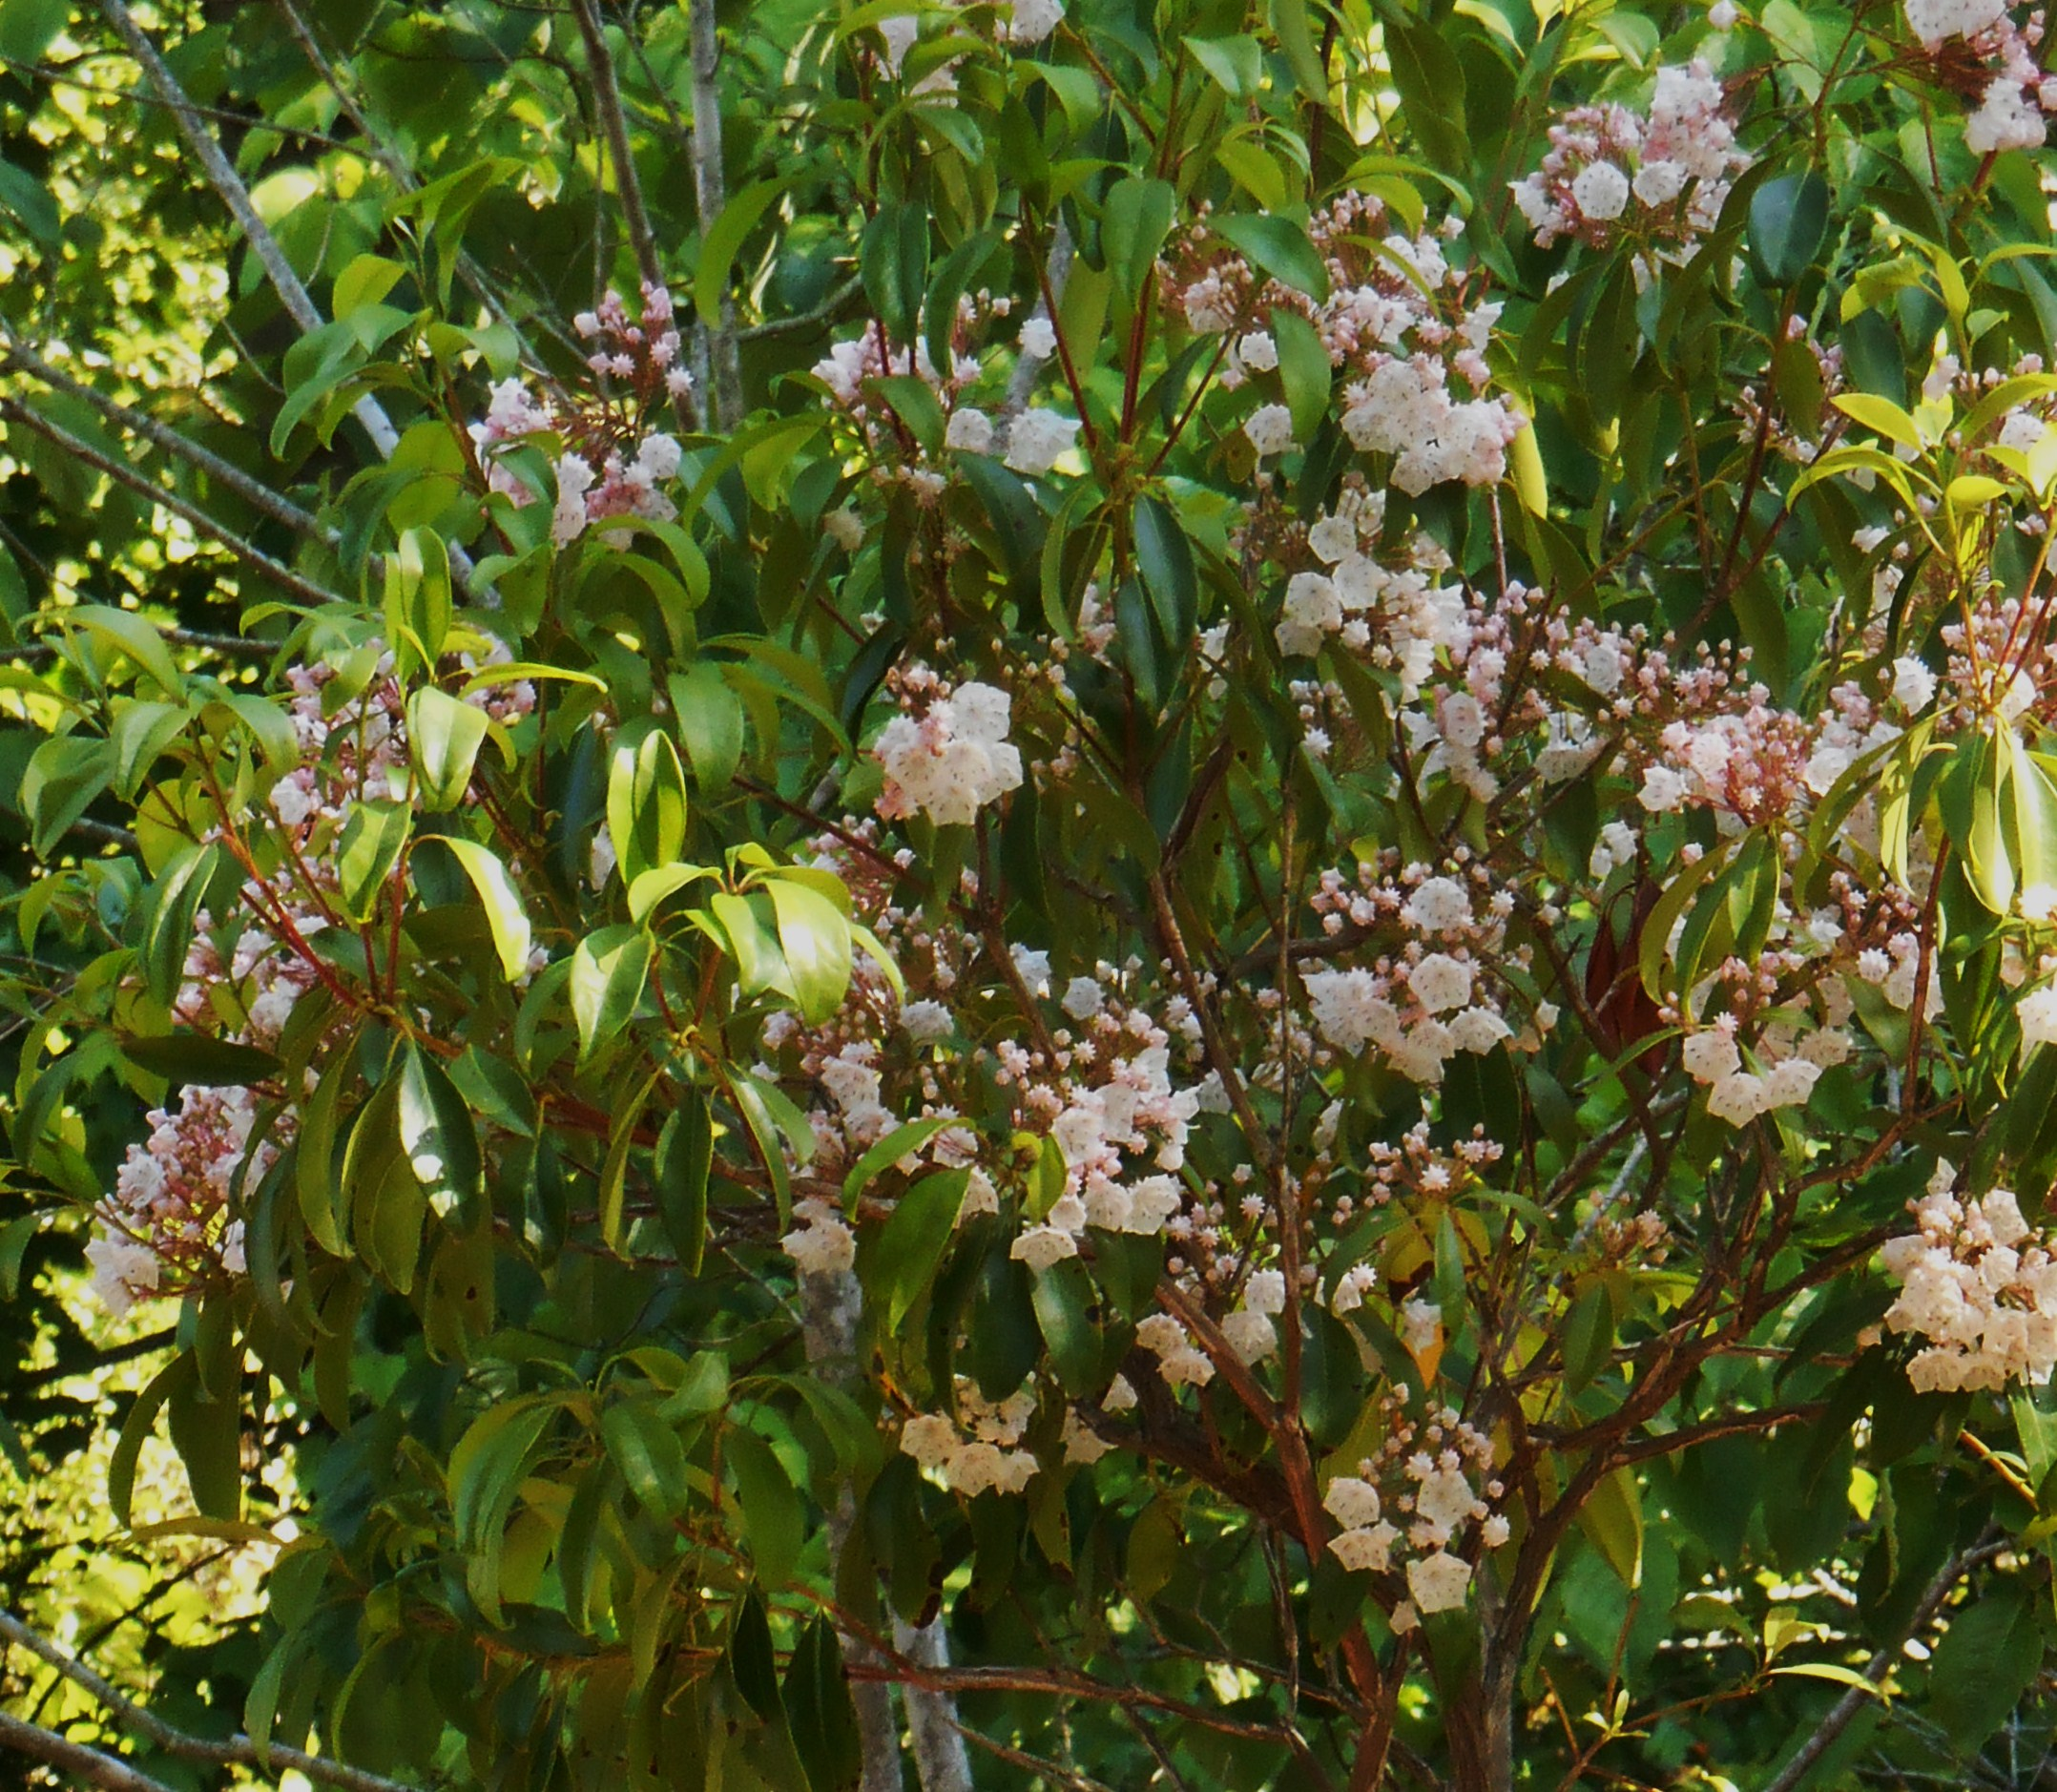 May 11,2014 Bamboo And Roses 036 Mountain Laurel